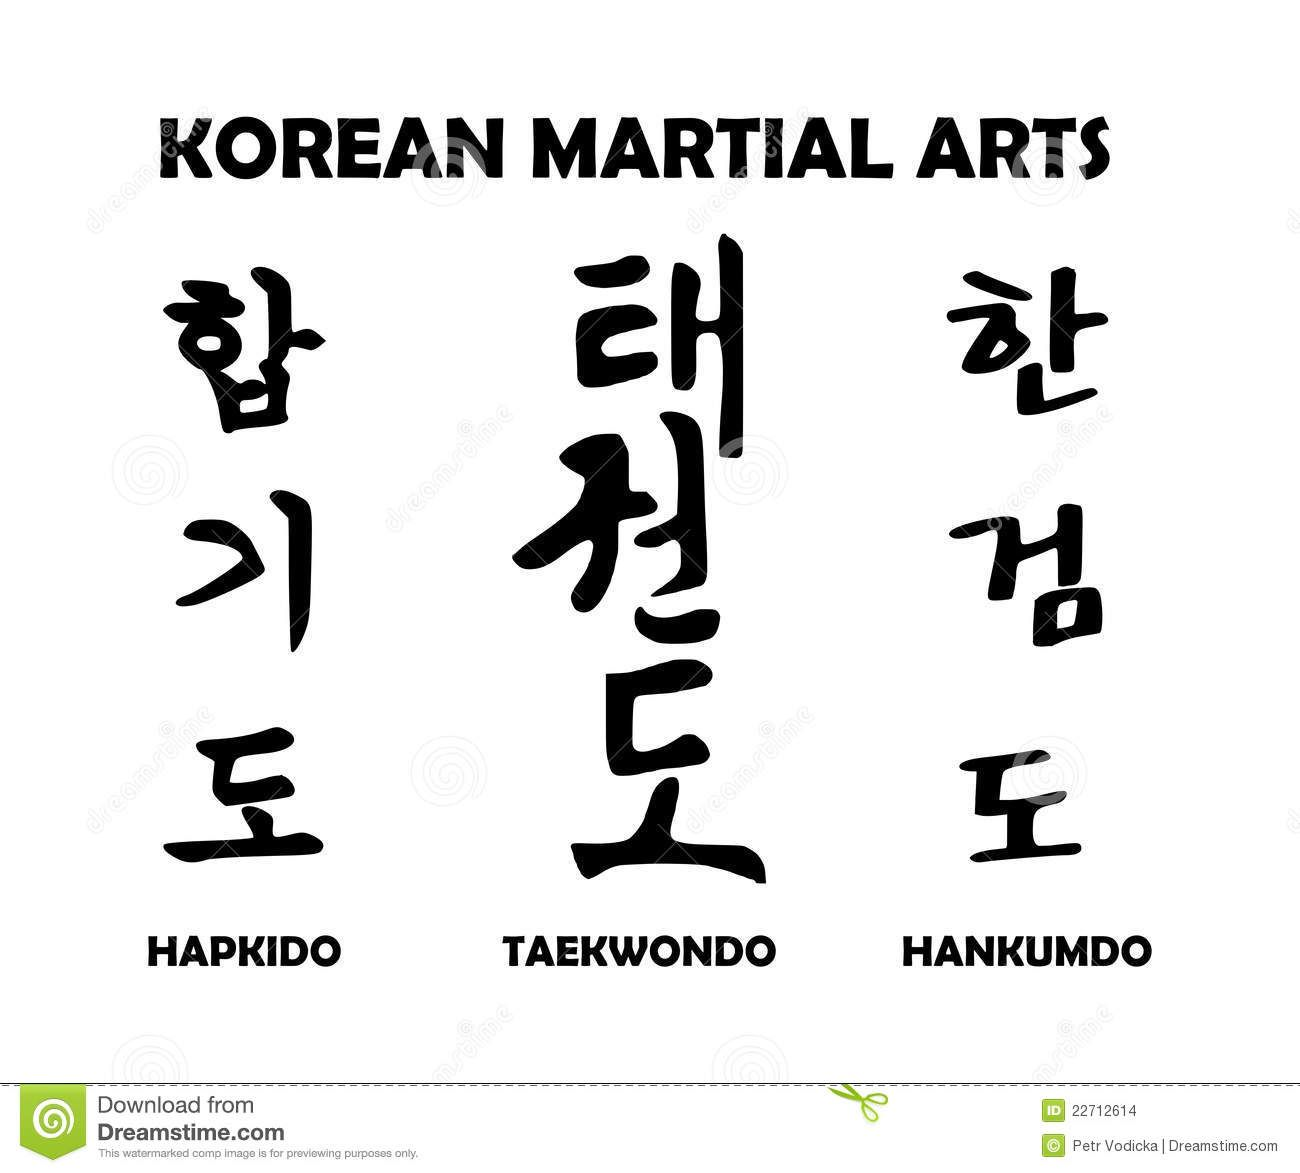 Korean symbols for peace google search korean symbols korean symbols for peace google search biocorpaavc Image collections